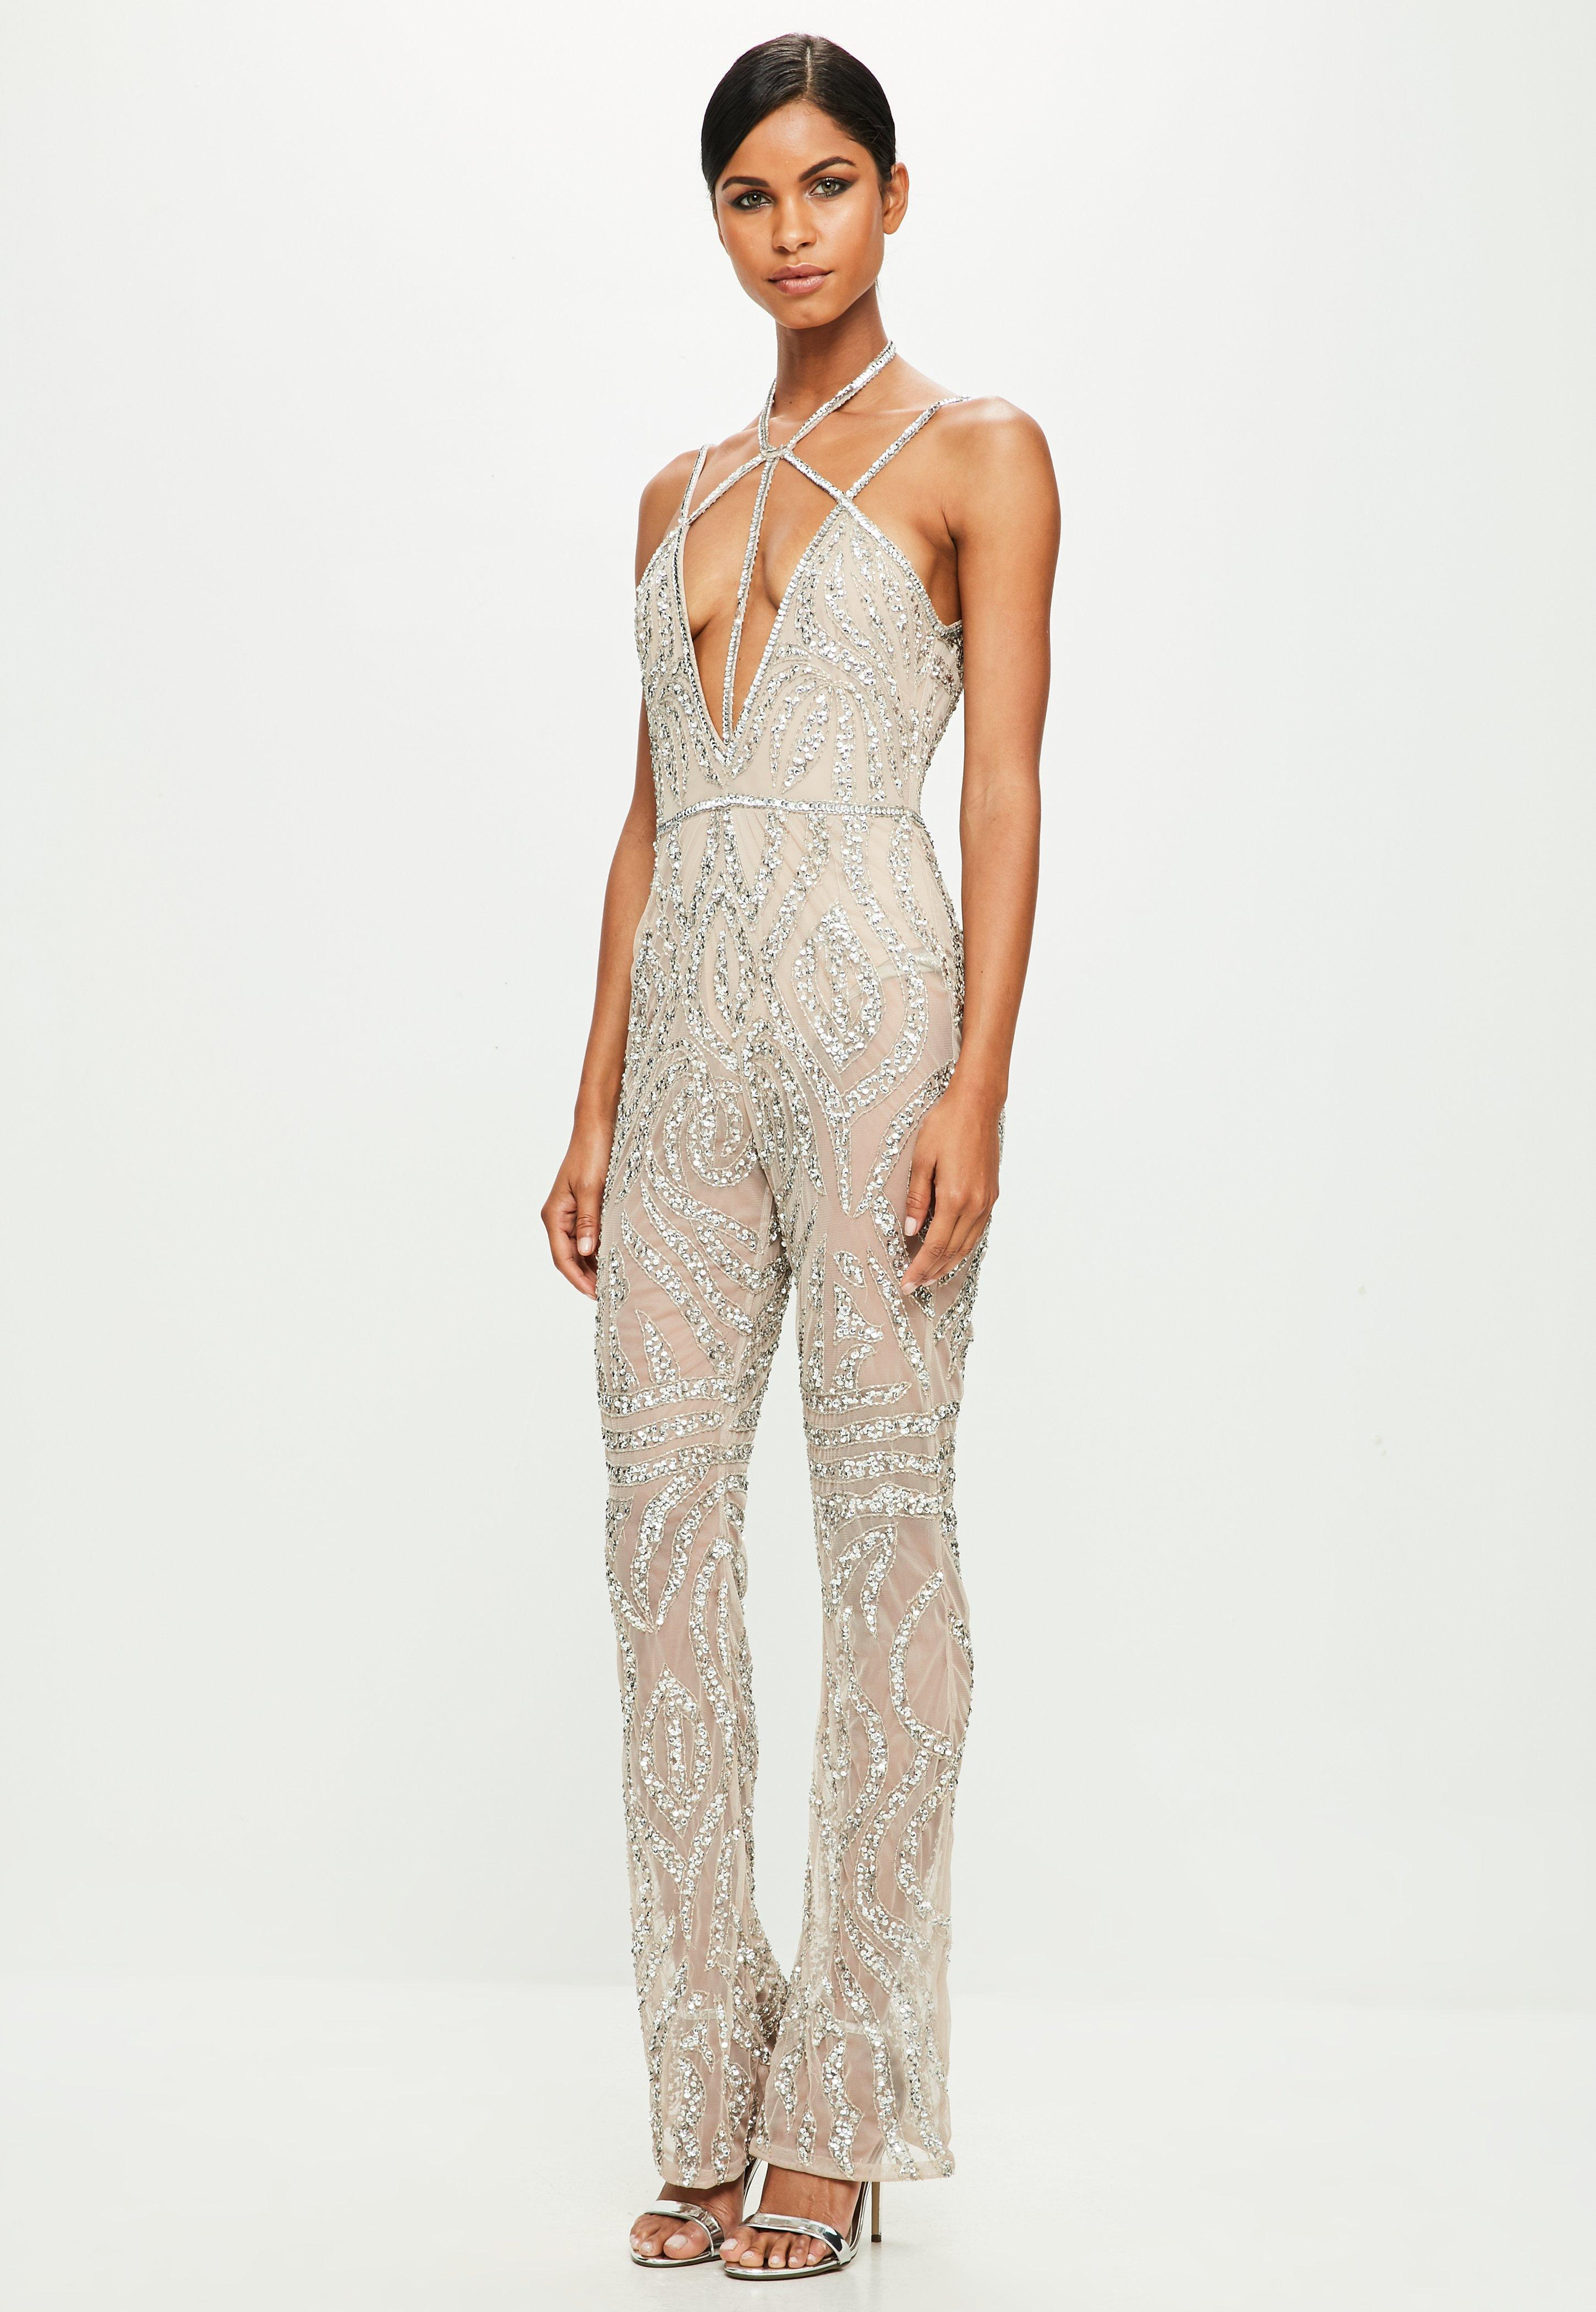 0ab582819a08 Missguided Peace + Love Nude Strappy Embellished Wide Leg Jumpsuit ...